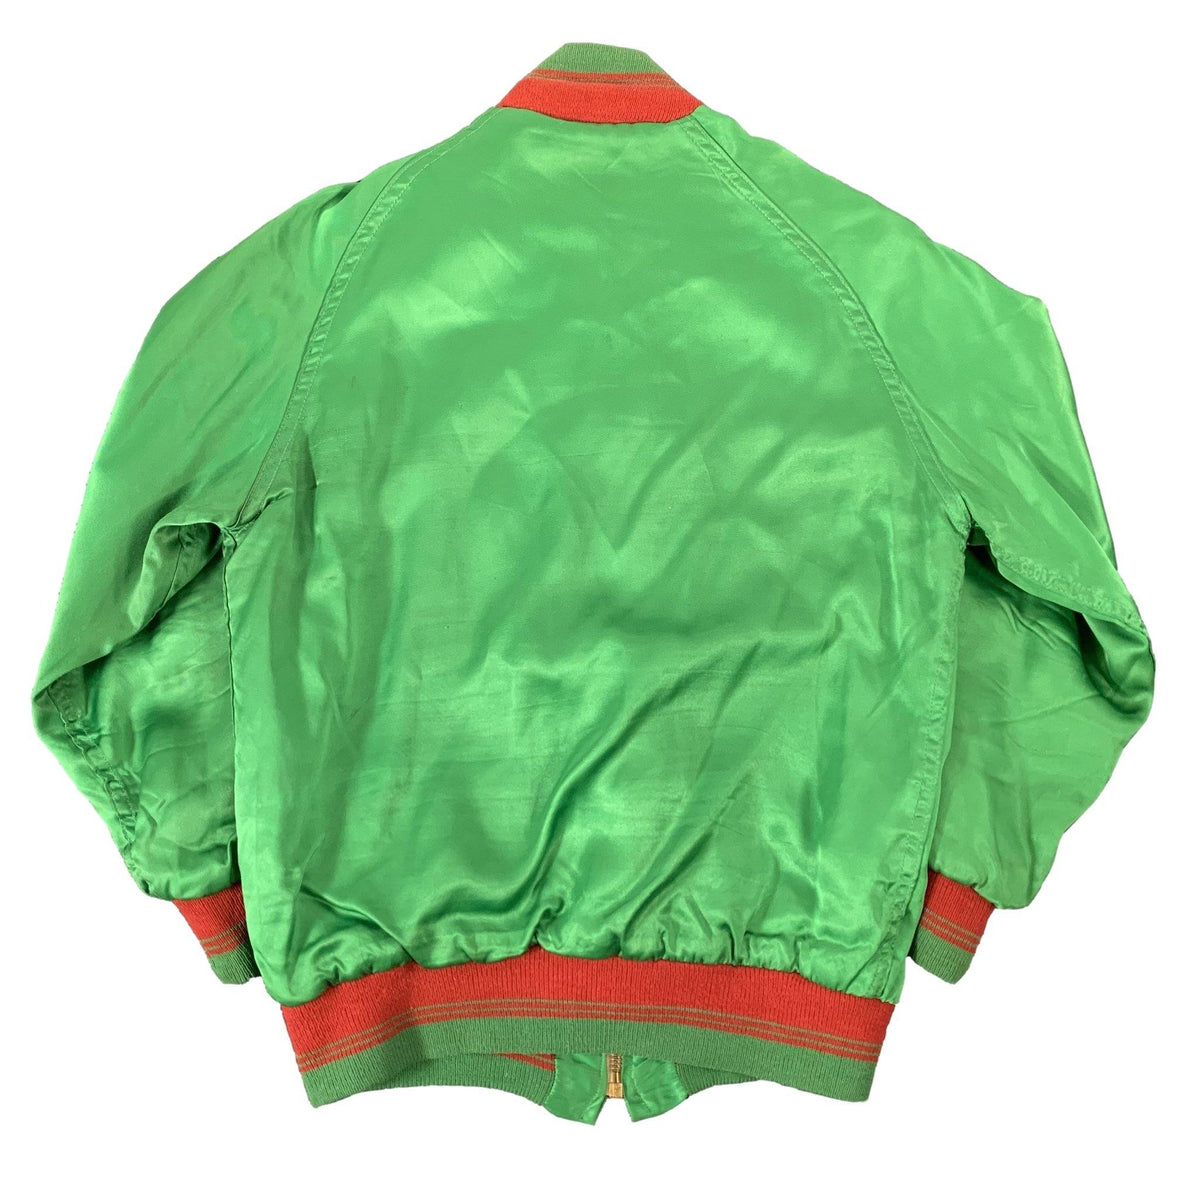 "Vintage Oakwood Creations ""Skinner Satin"" Jacket - jointcustodydc"